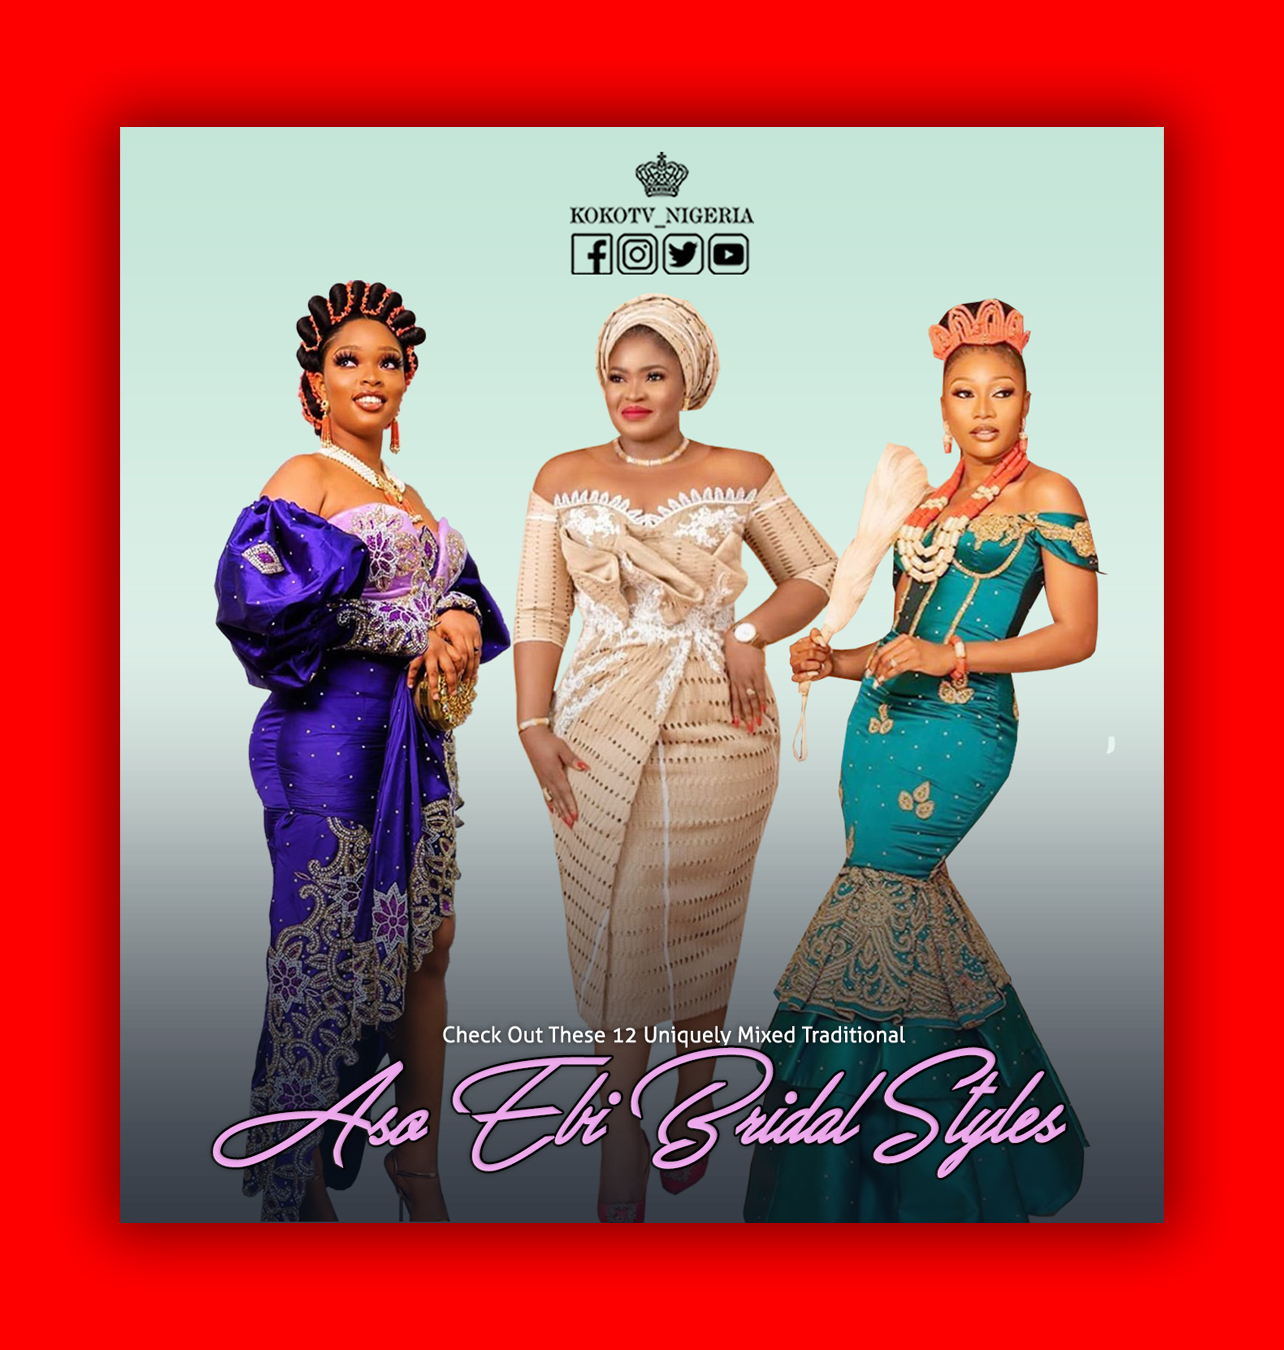 Check Out These 12 Uniquely Mixed Traditional Aso Ebi Bridal Styles